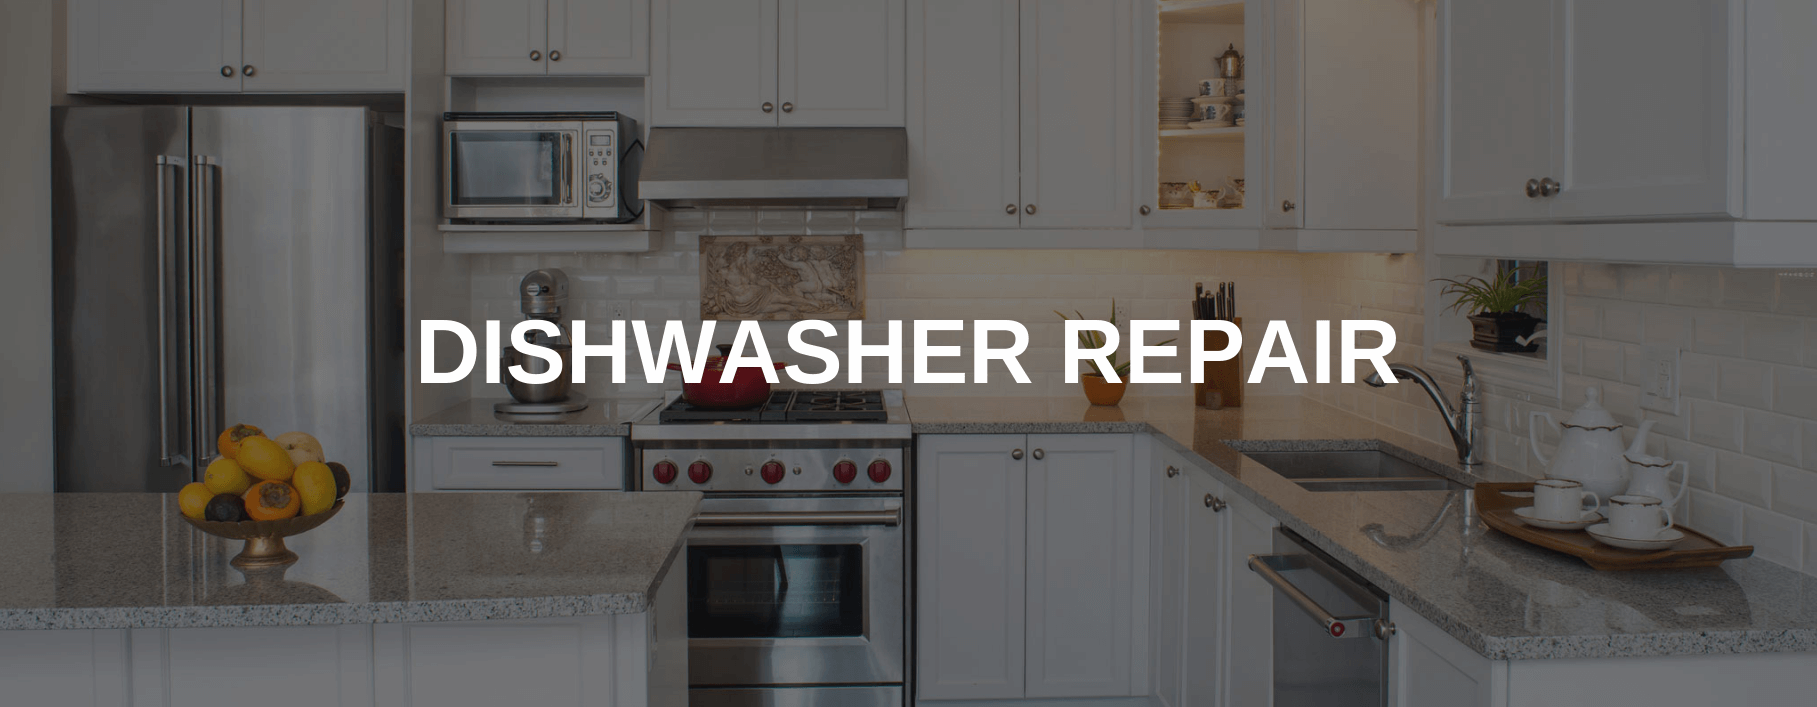 dishwasher repair ann arbor